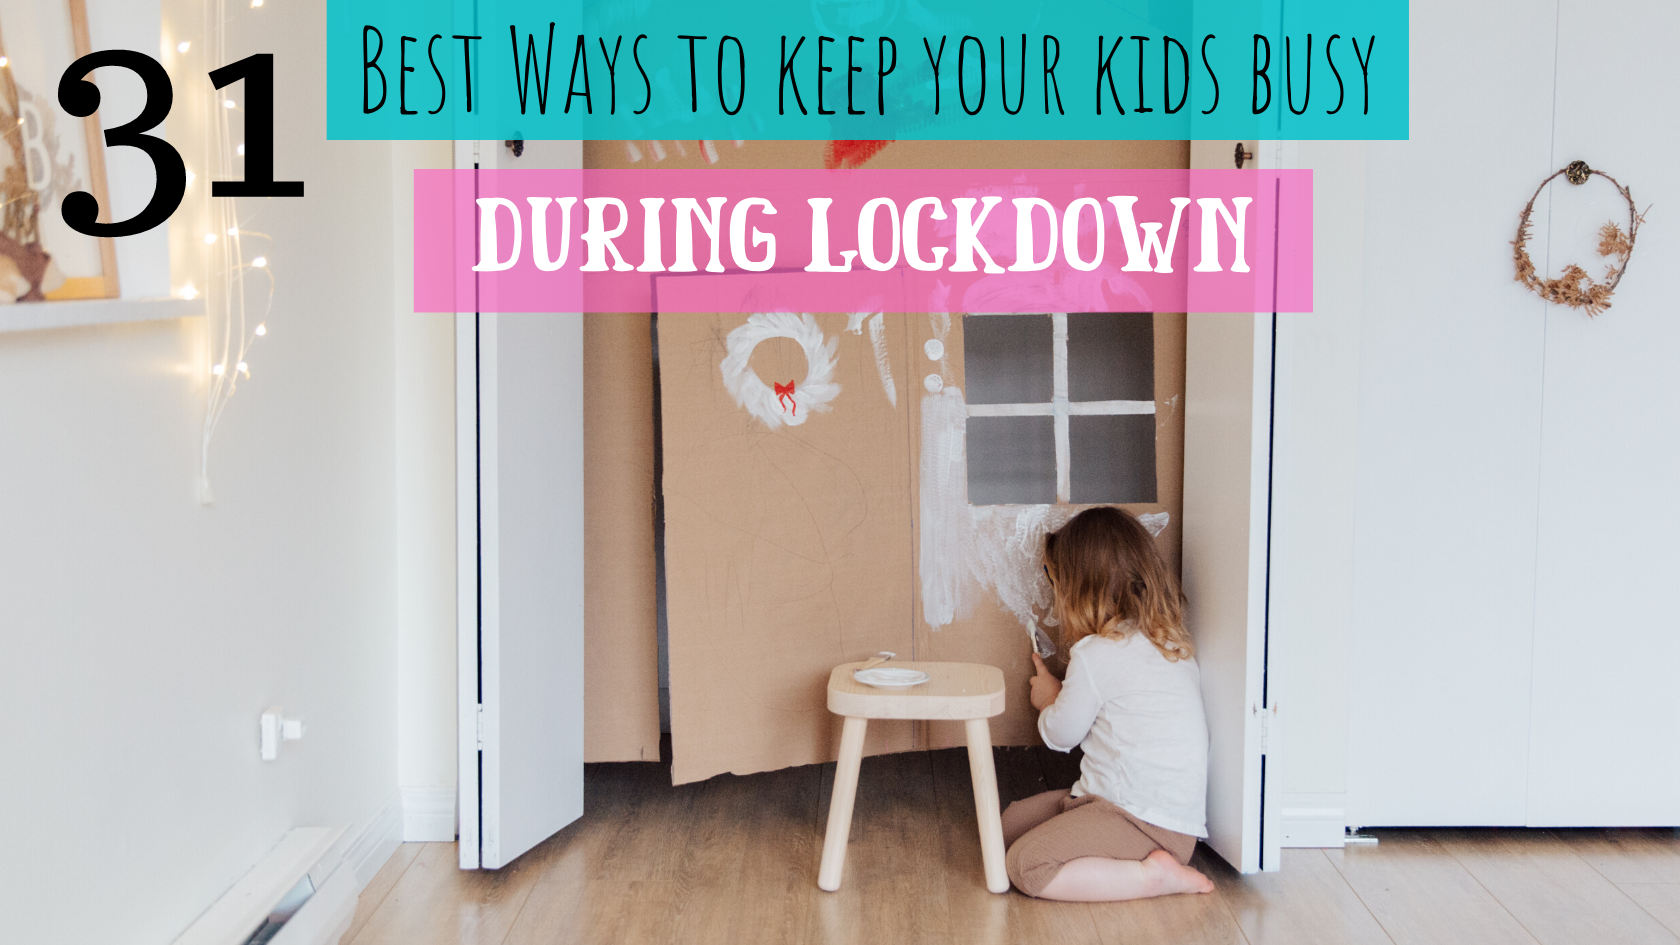 31 Best Ways to Keep Your Kids Busy During Lockdown